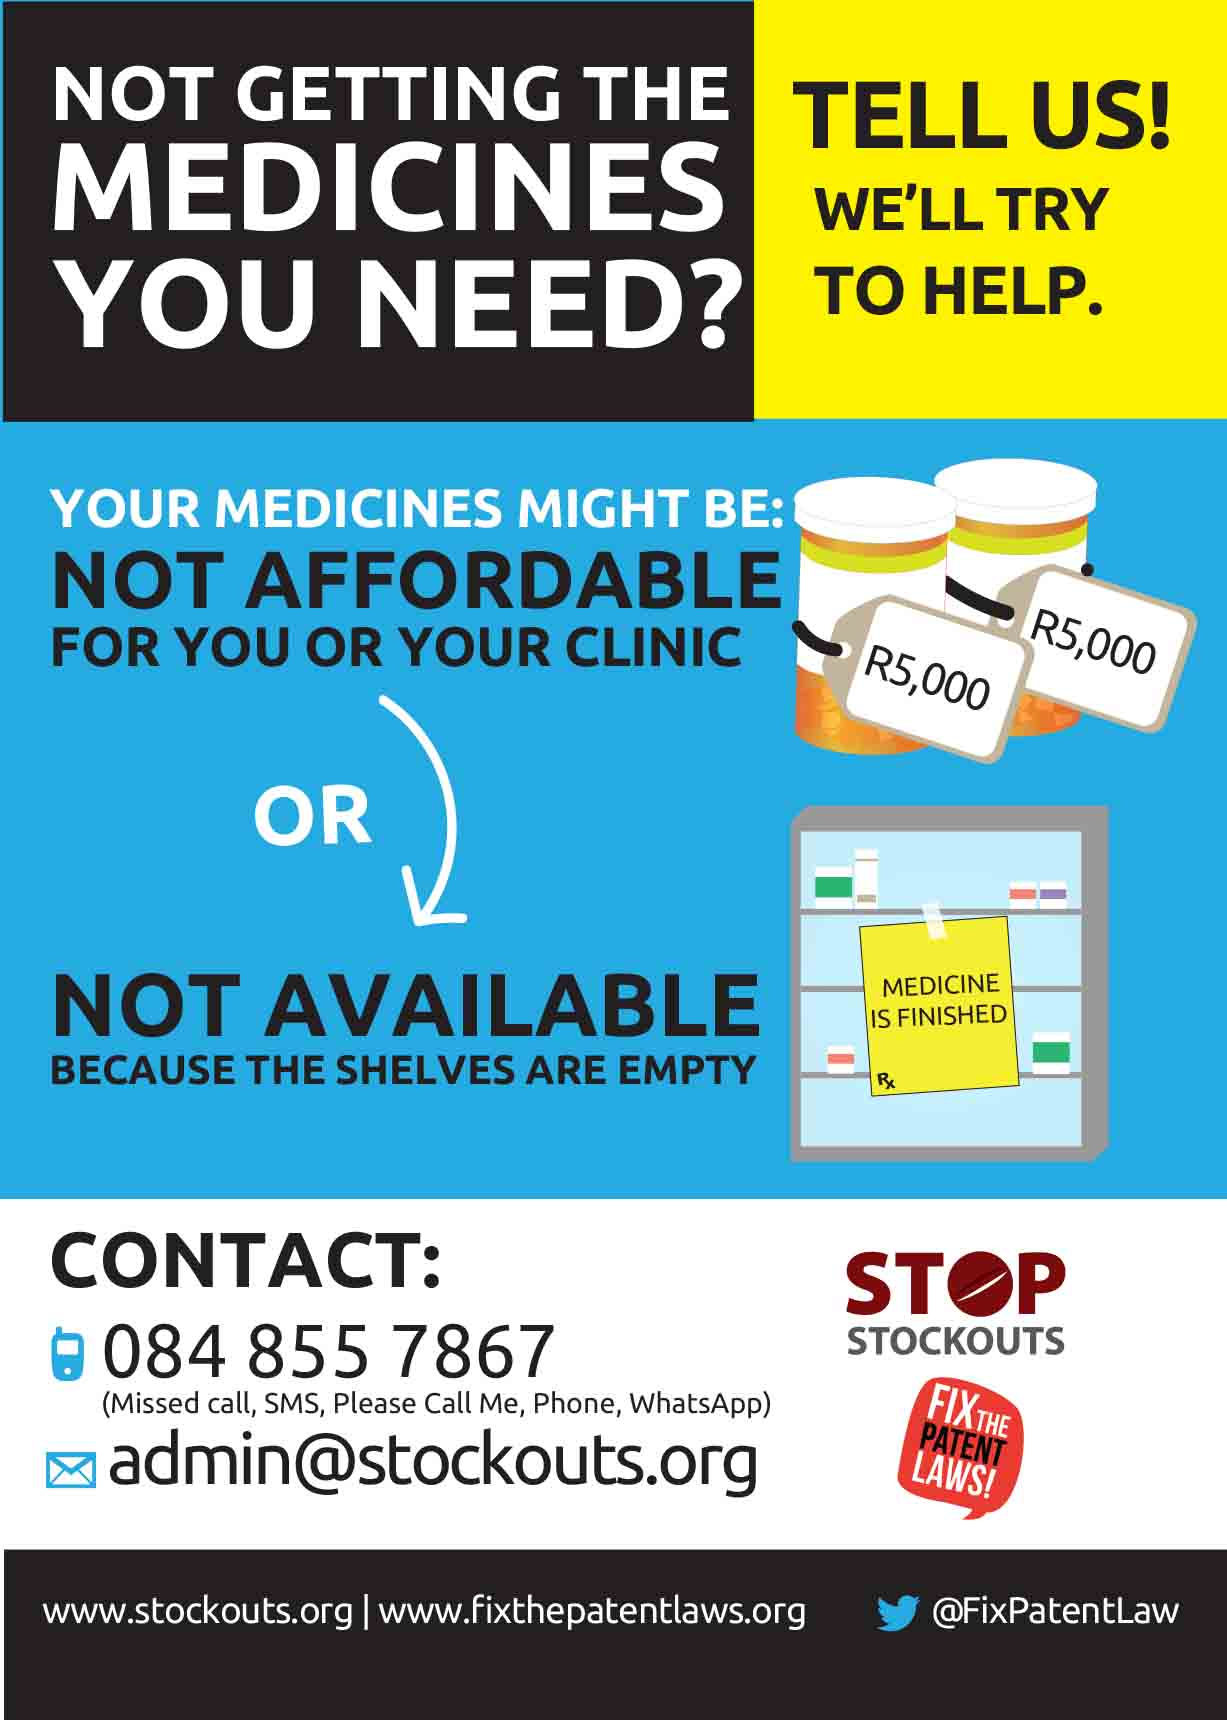 Not getting the medicine you need poster